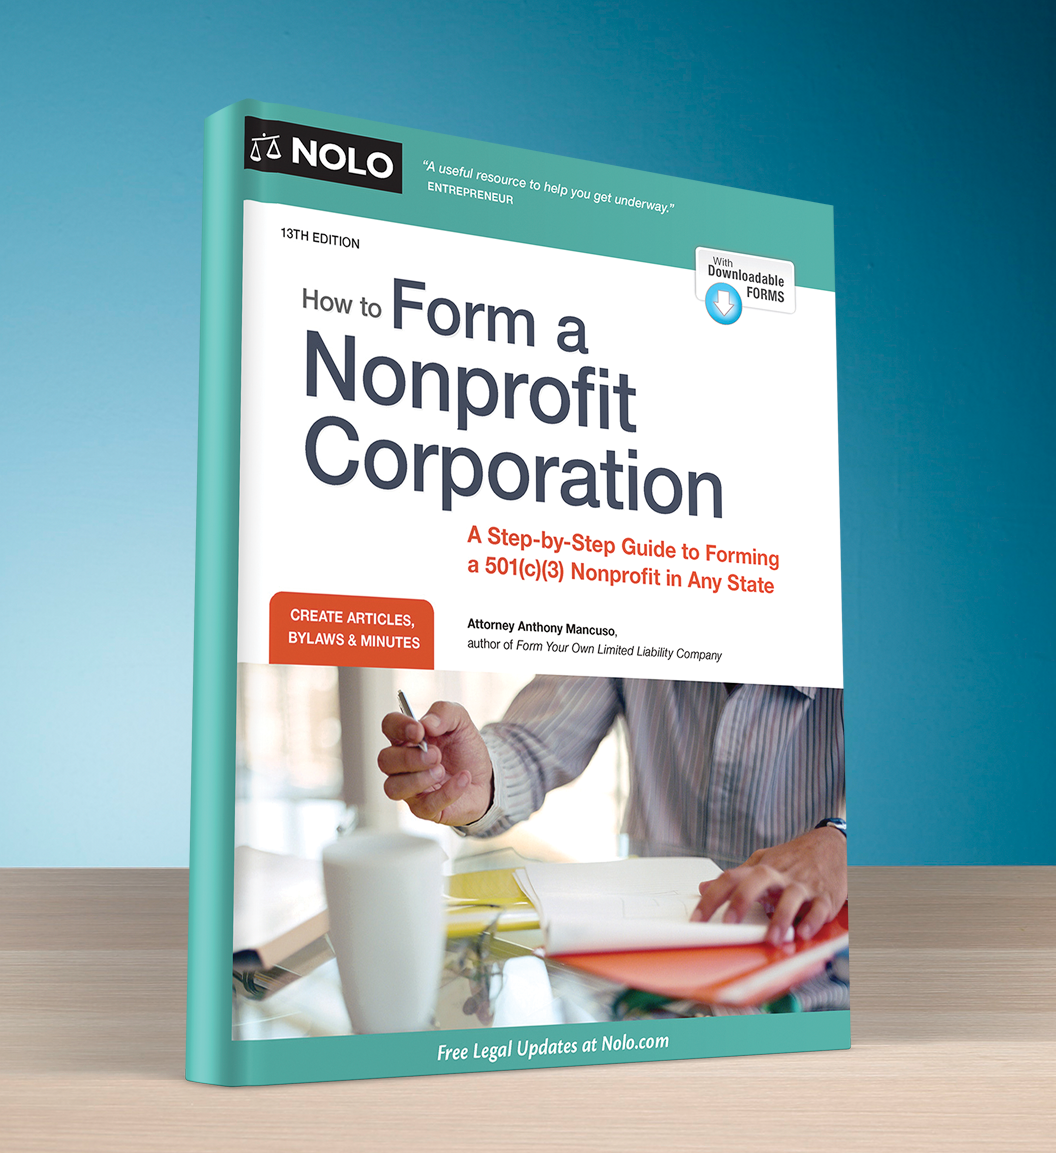 How to Form a Nonprofit Corporation (13th edition) - #4748